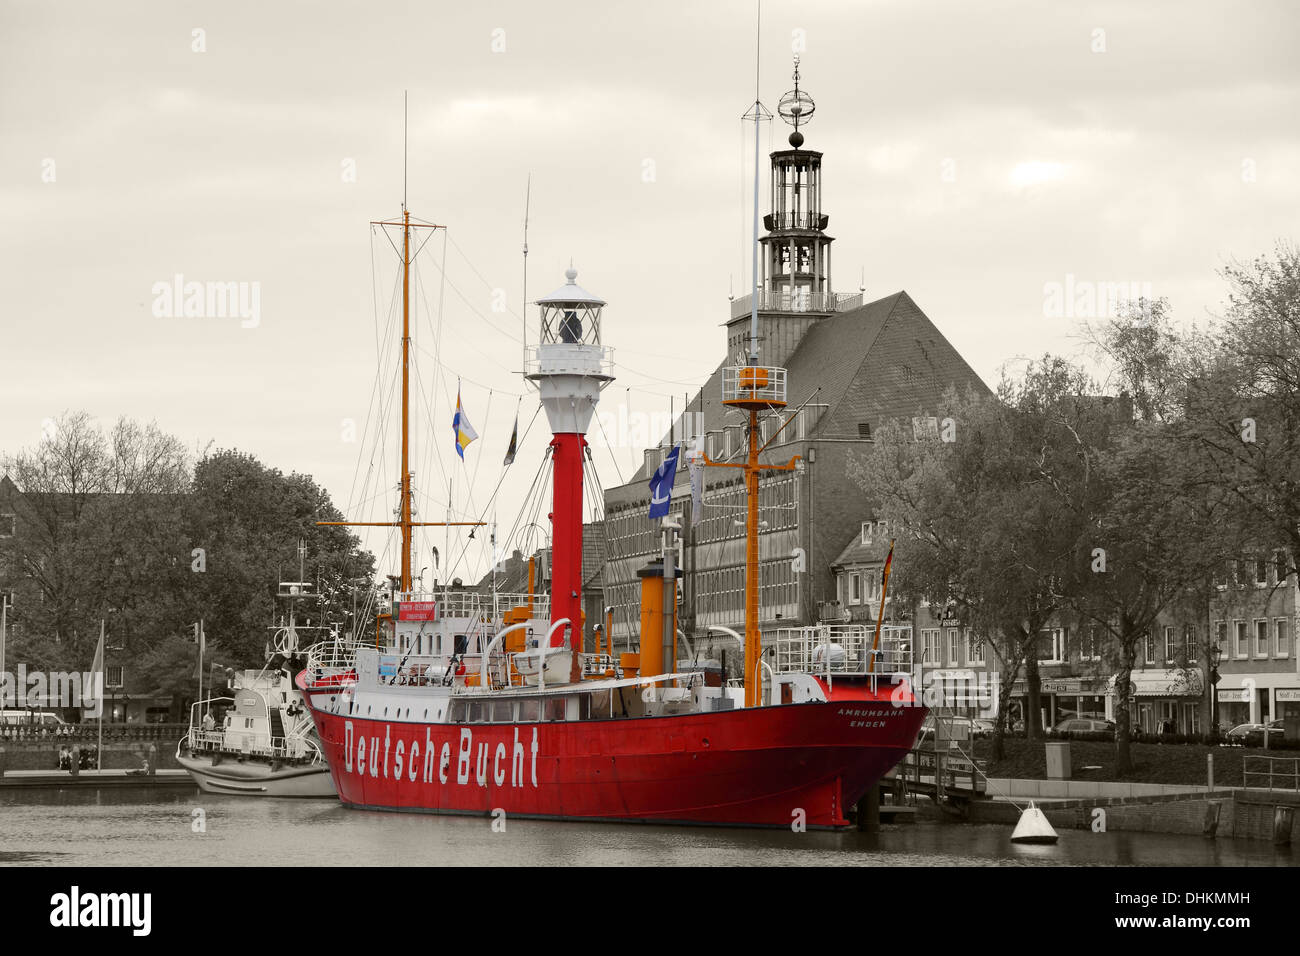 Lightship in the Old Inland Port - Stock Image